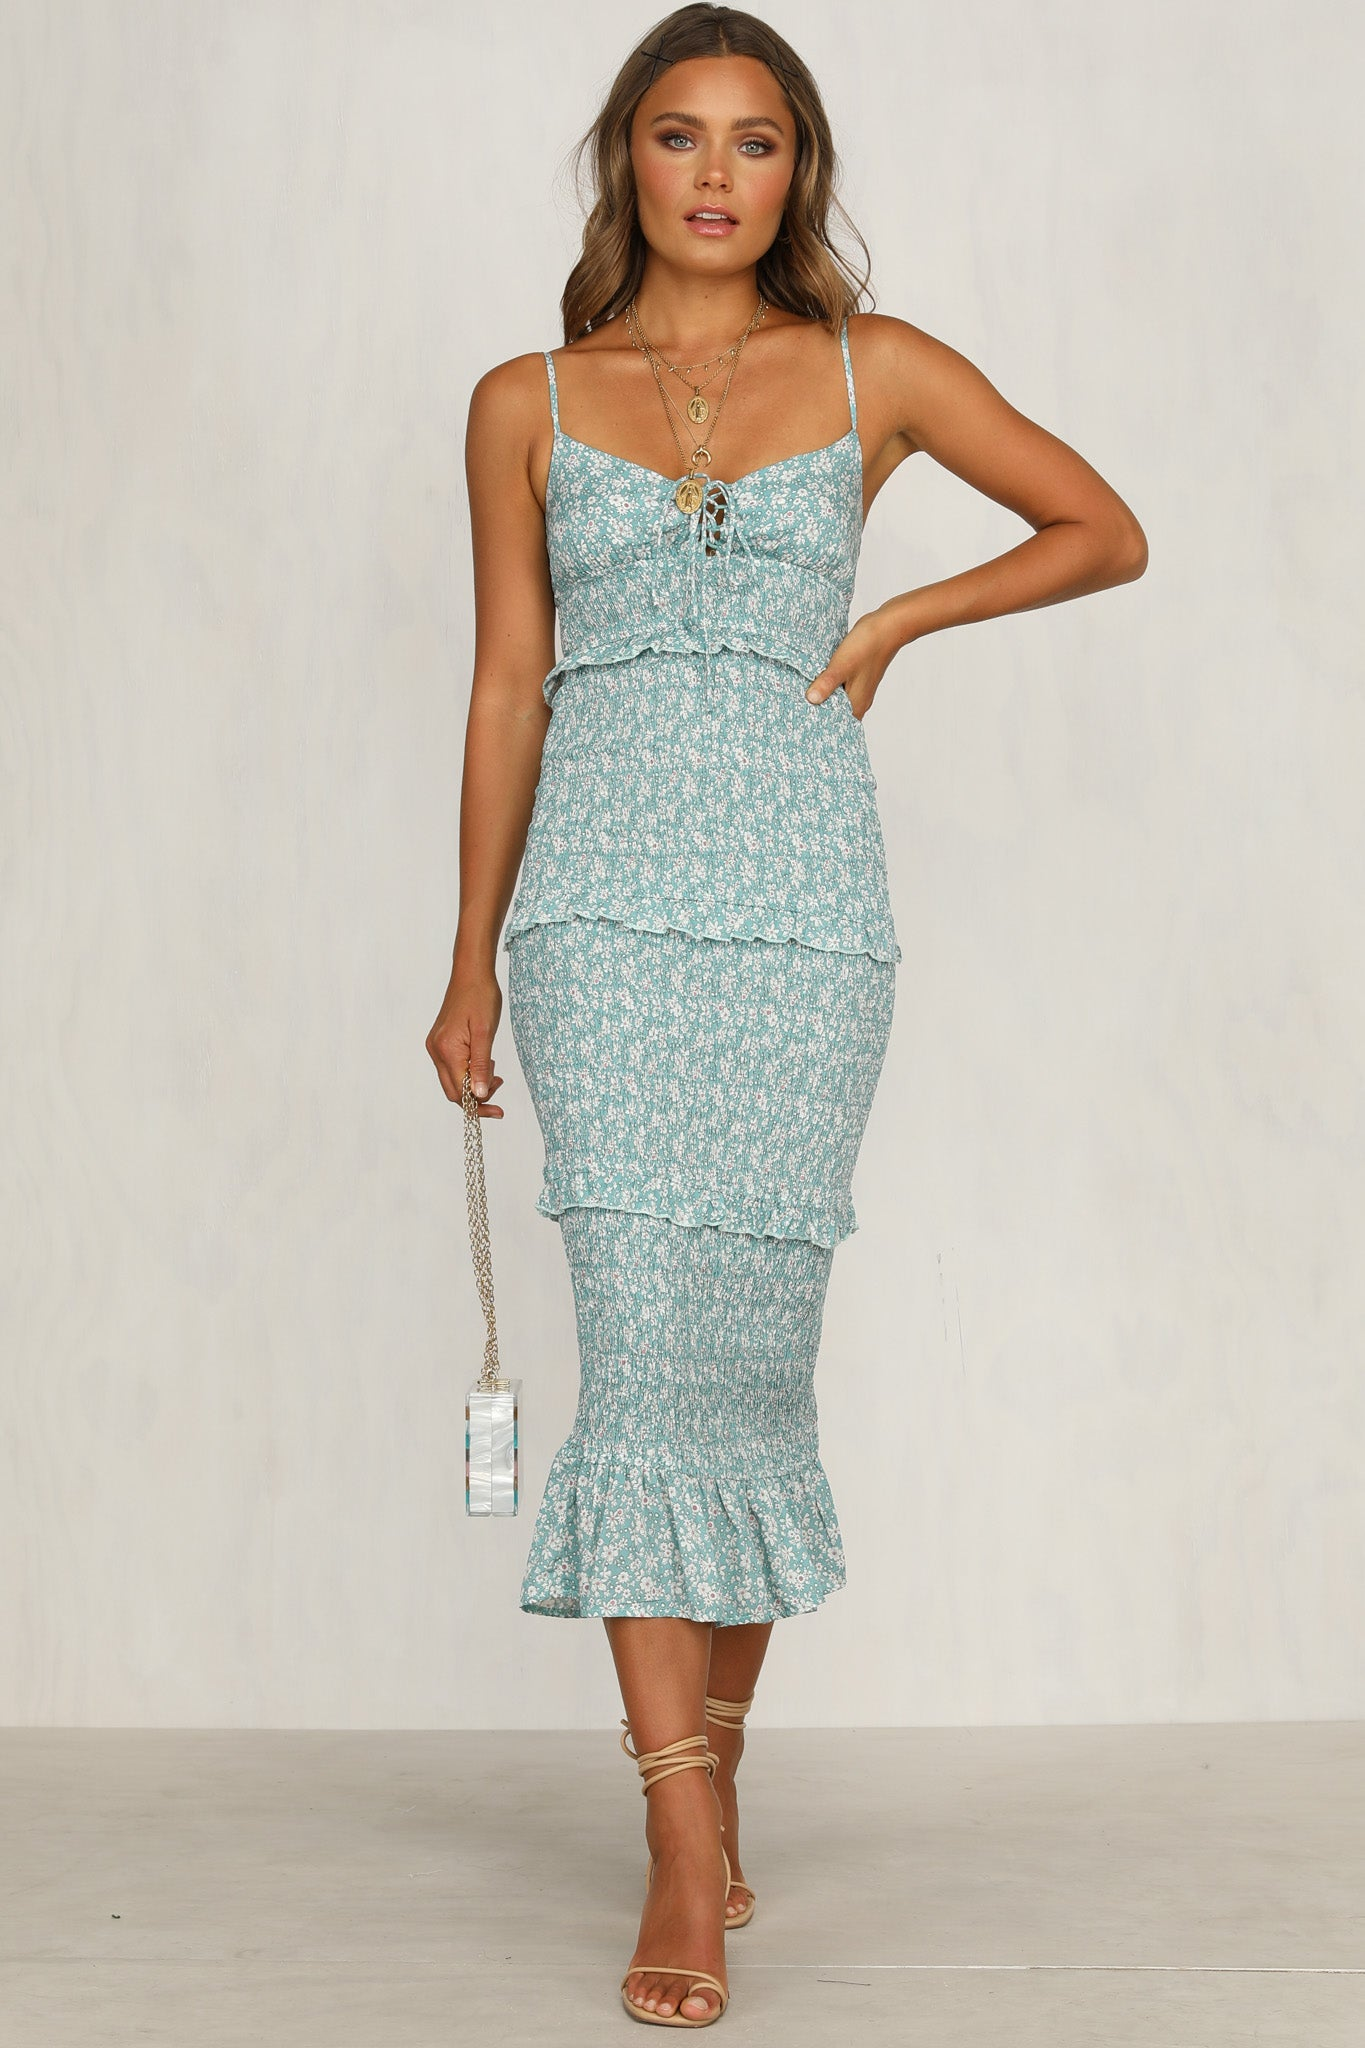 Levitate Dress (Teal)